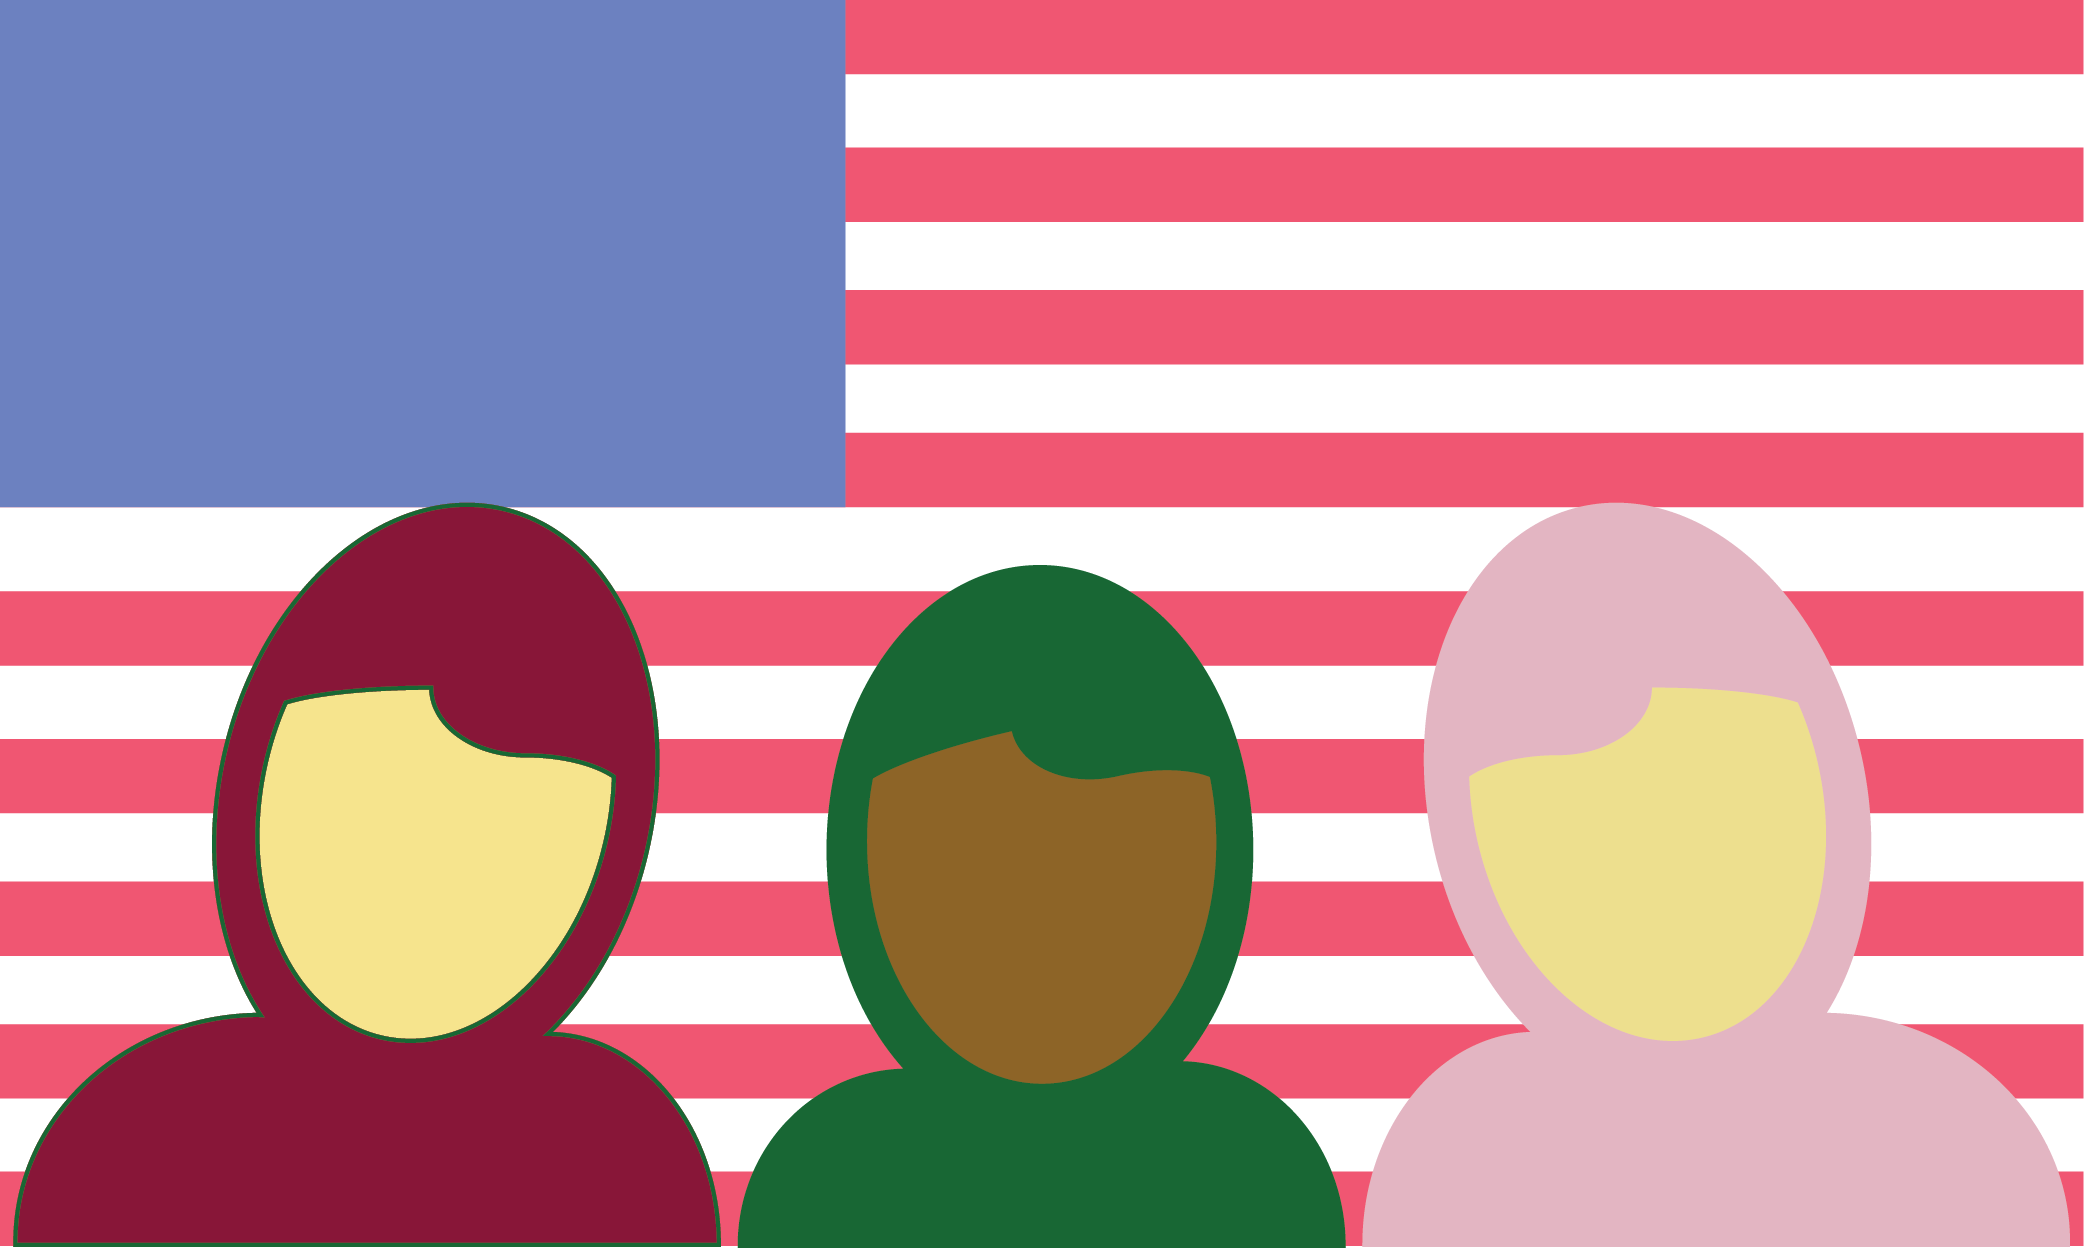 Concept illustration of Muslim people in front of the US flag.